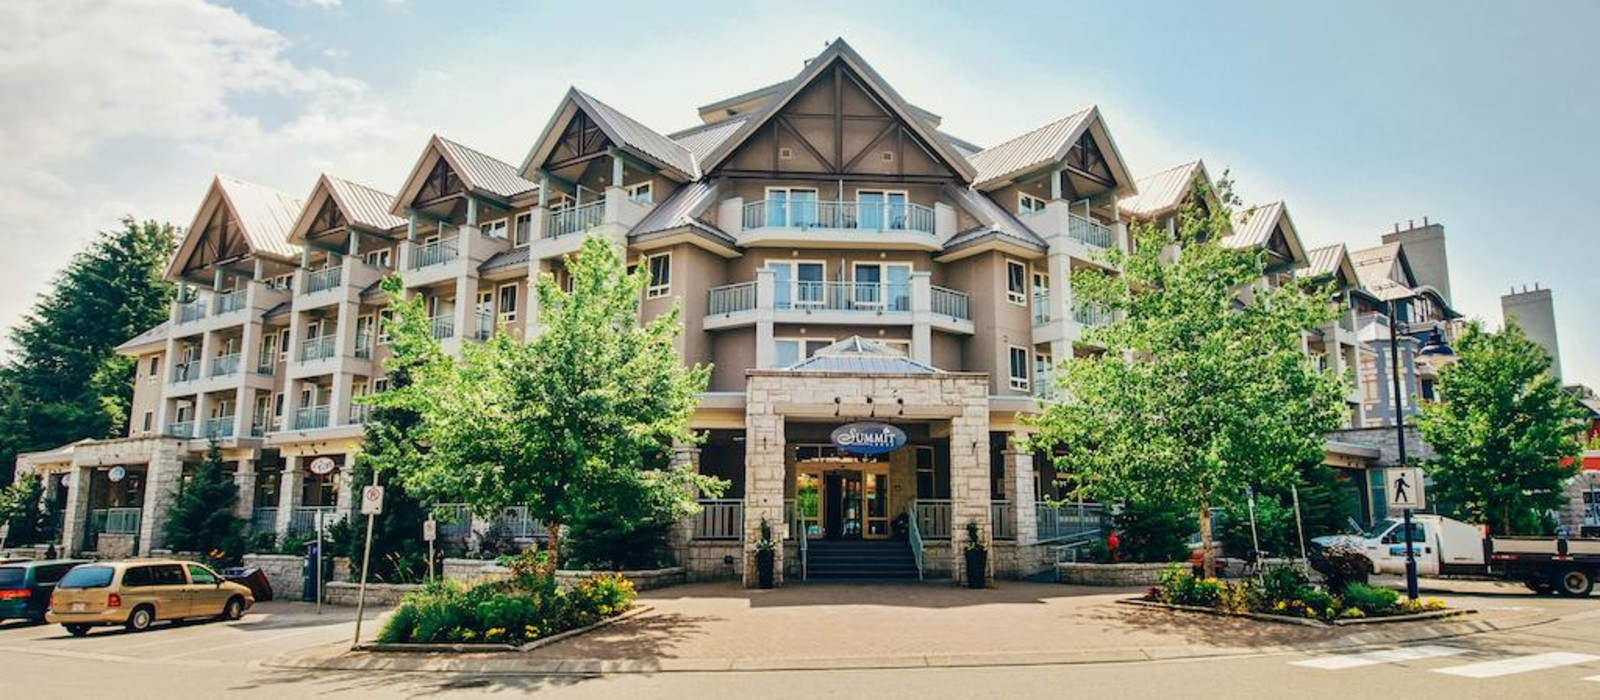 Hotel Summit Lodge Boutique  Kanada